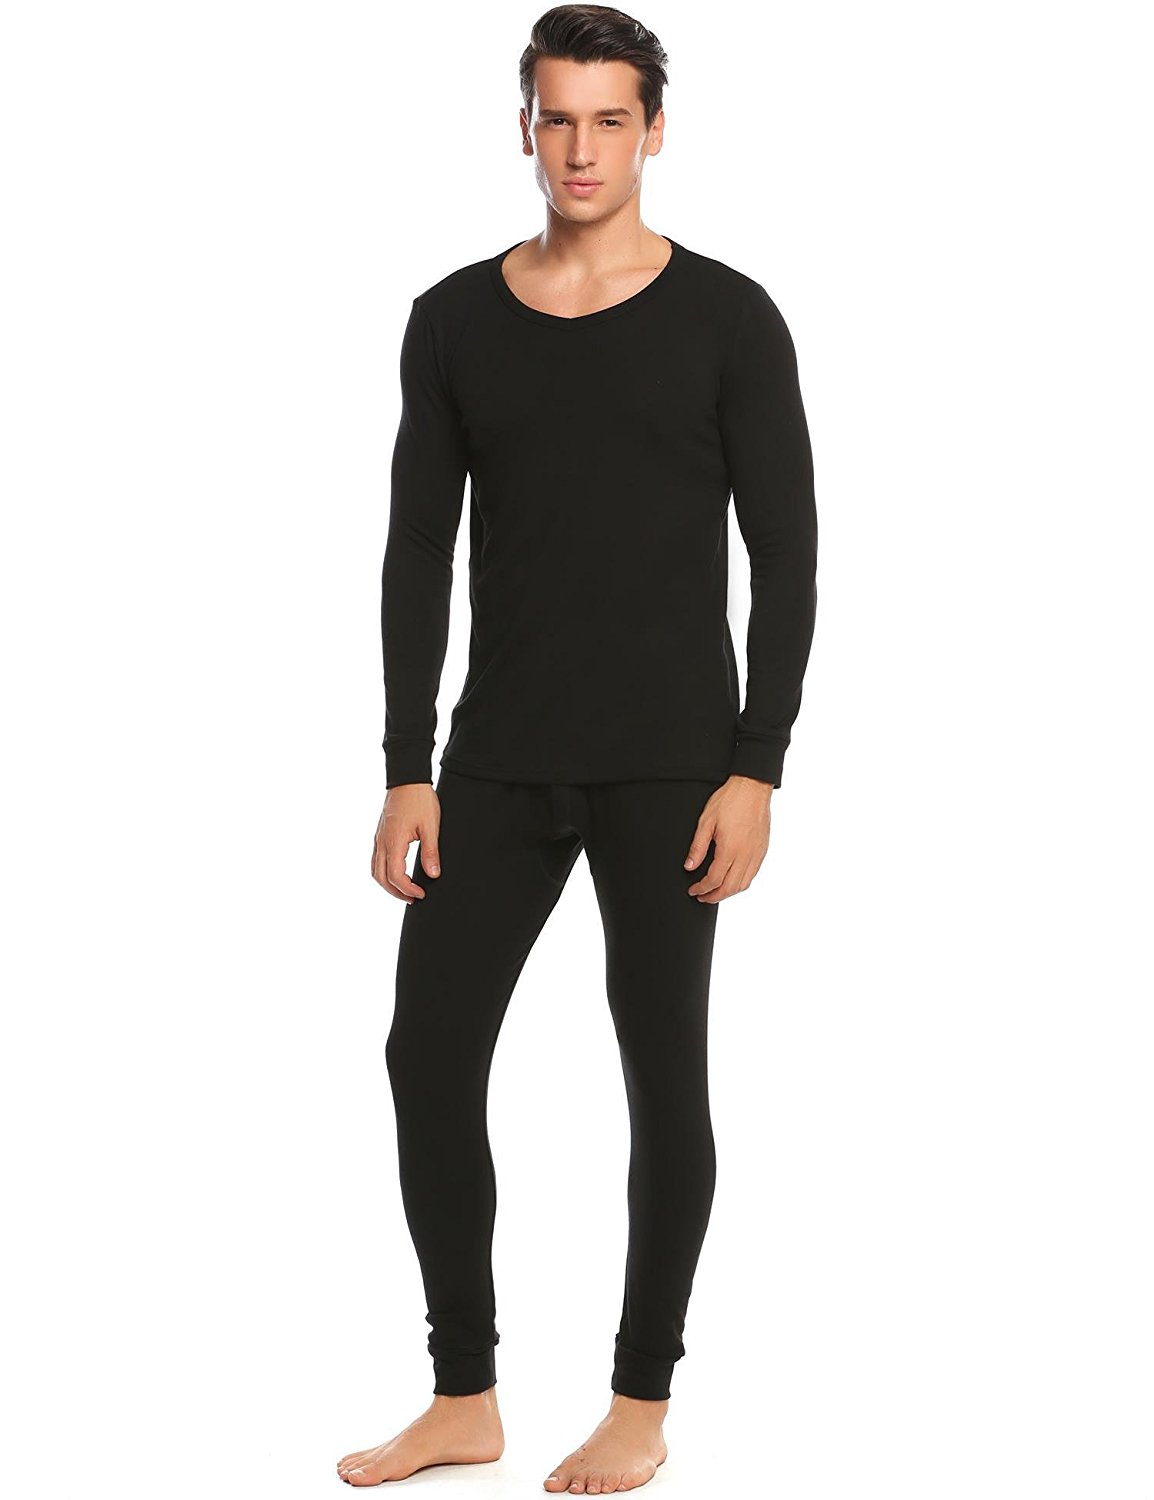 5acd61a22c08 Get Quotations · Hufcor Men s Cotton Winter Long Johns Thermal Soft Cotton  Shirt Pants 2PC Waffle Thermal Set